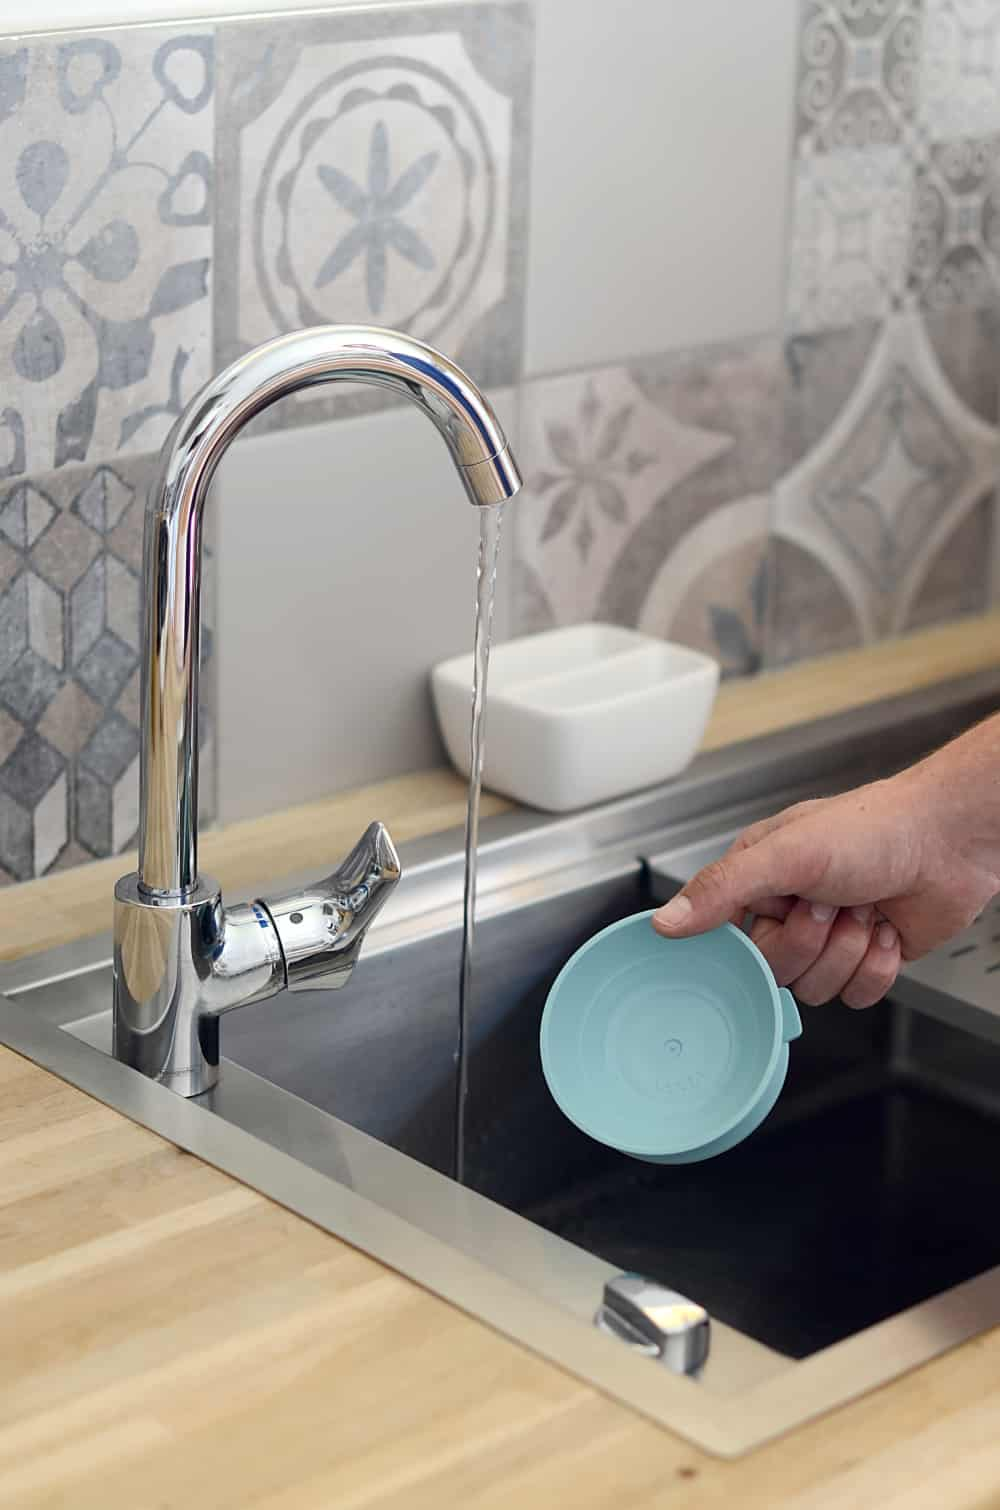 Beaba Glass Suction Silicone Piece Being Washed In Sink